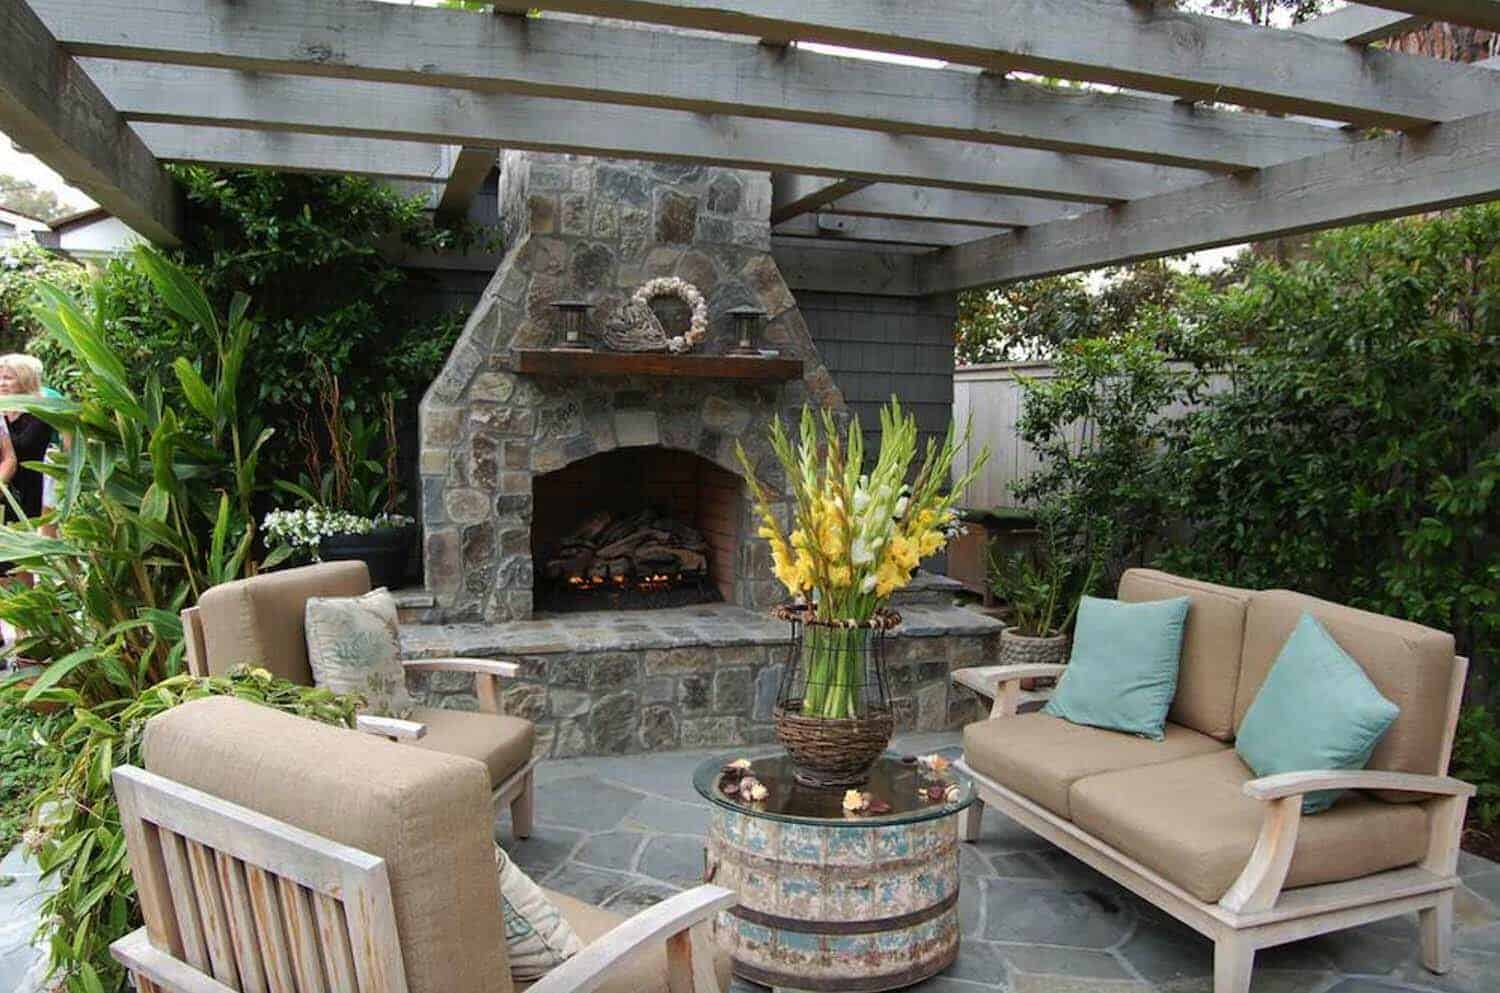 30+ Irresistible outdoor fireplace ideas that will leave ... on Small Outdoor Fireplace Ideas id=80832